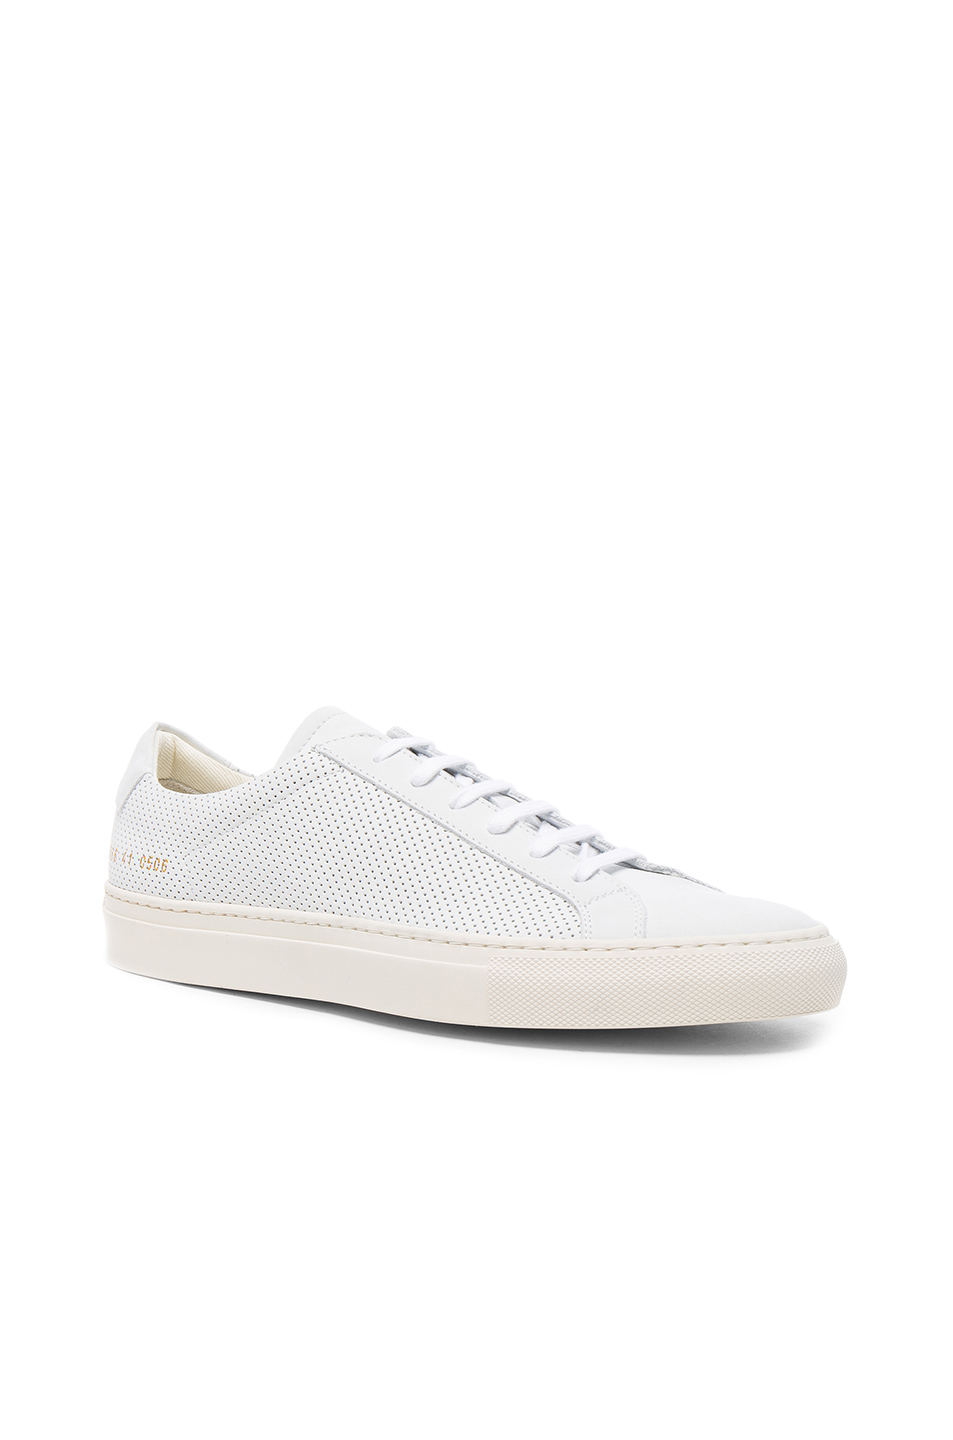 Common Projects Perforated Leather Achilles Summer Edition in White